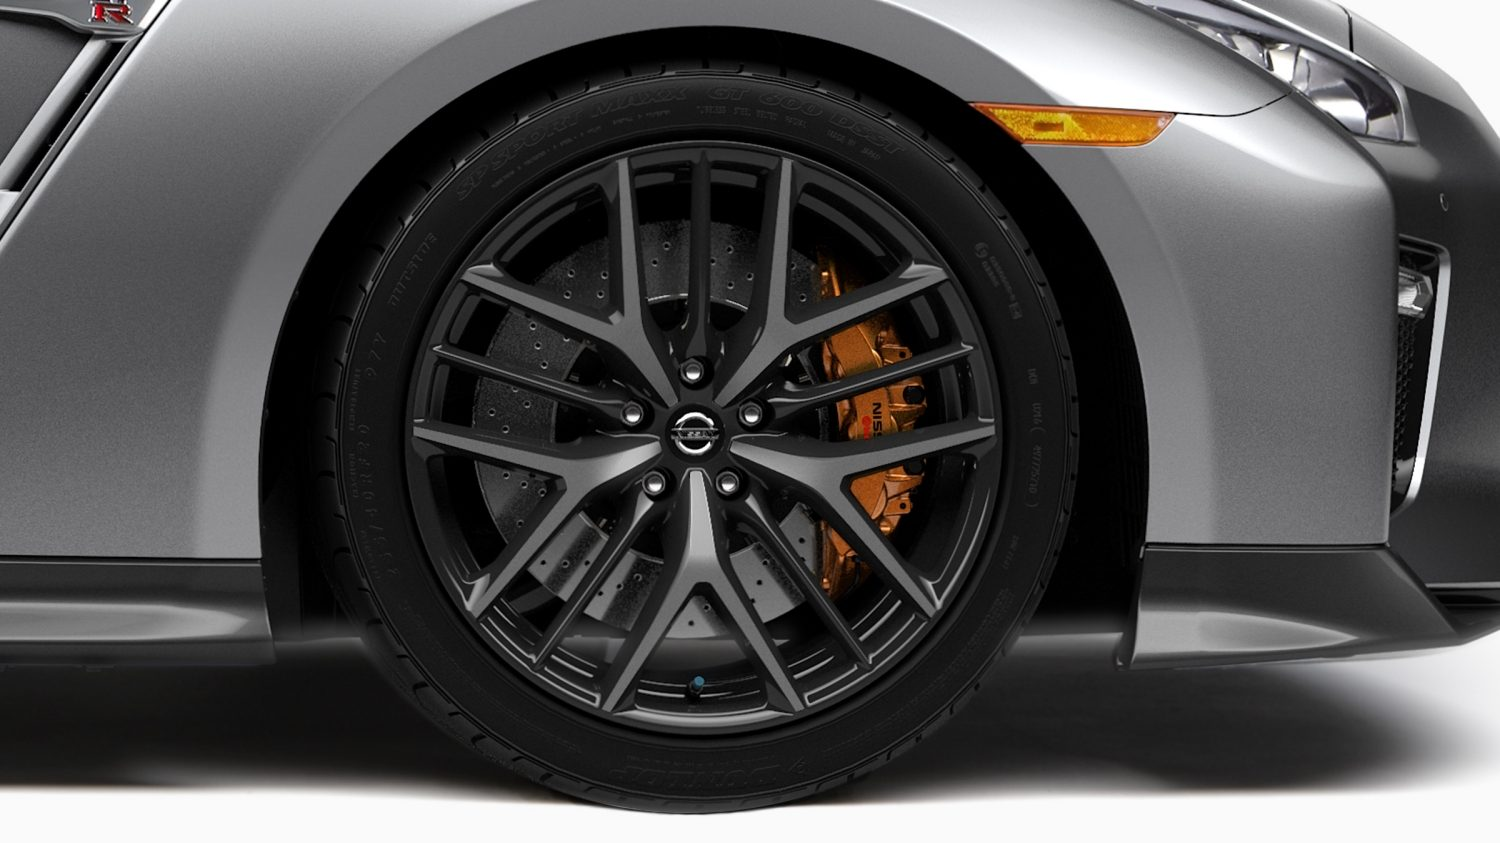 Nissan GT-R forged aluminium alloy wheels